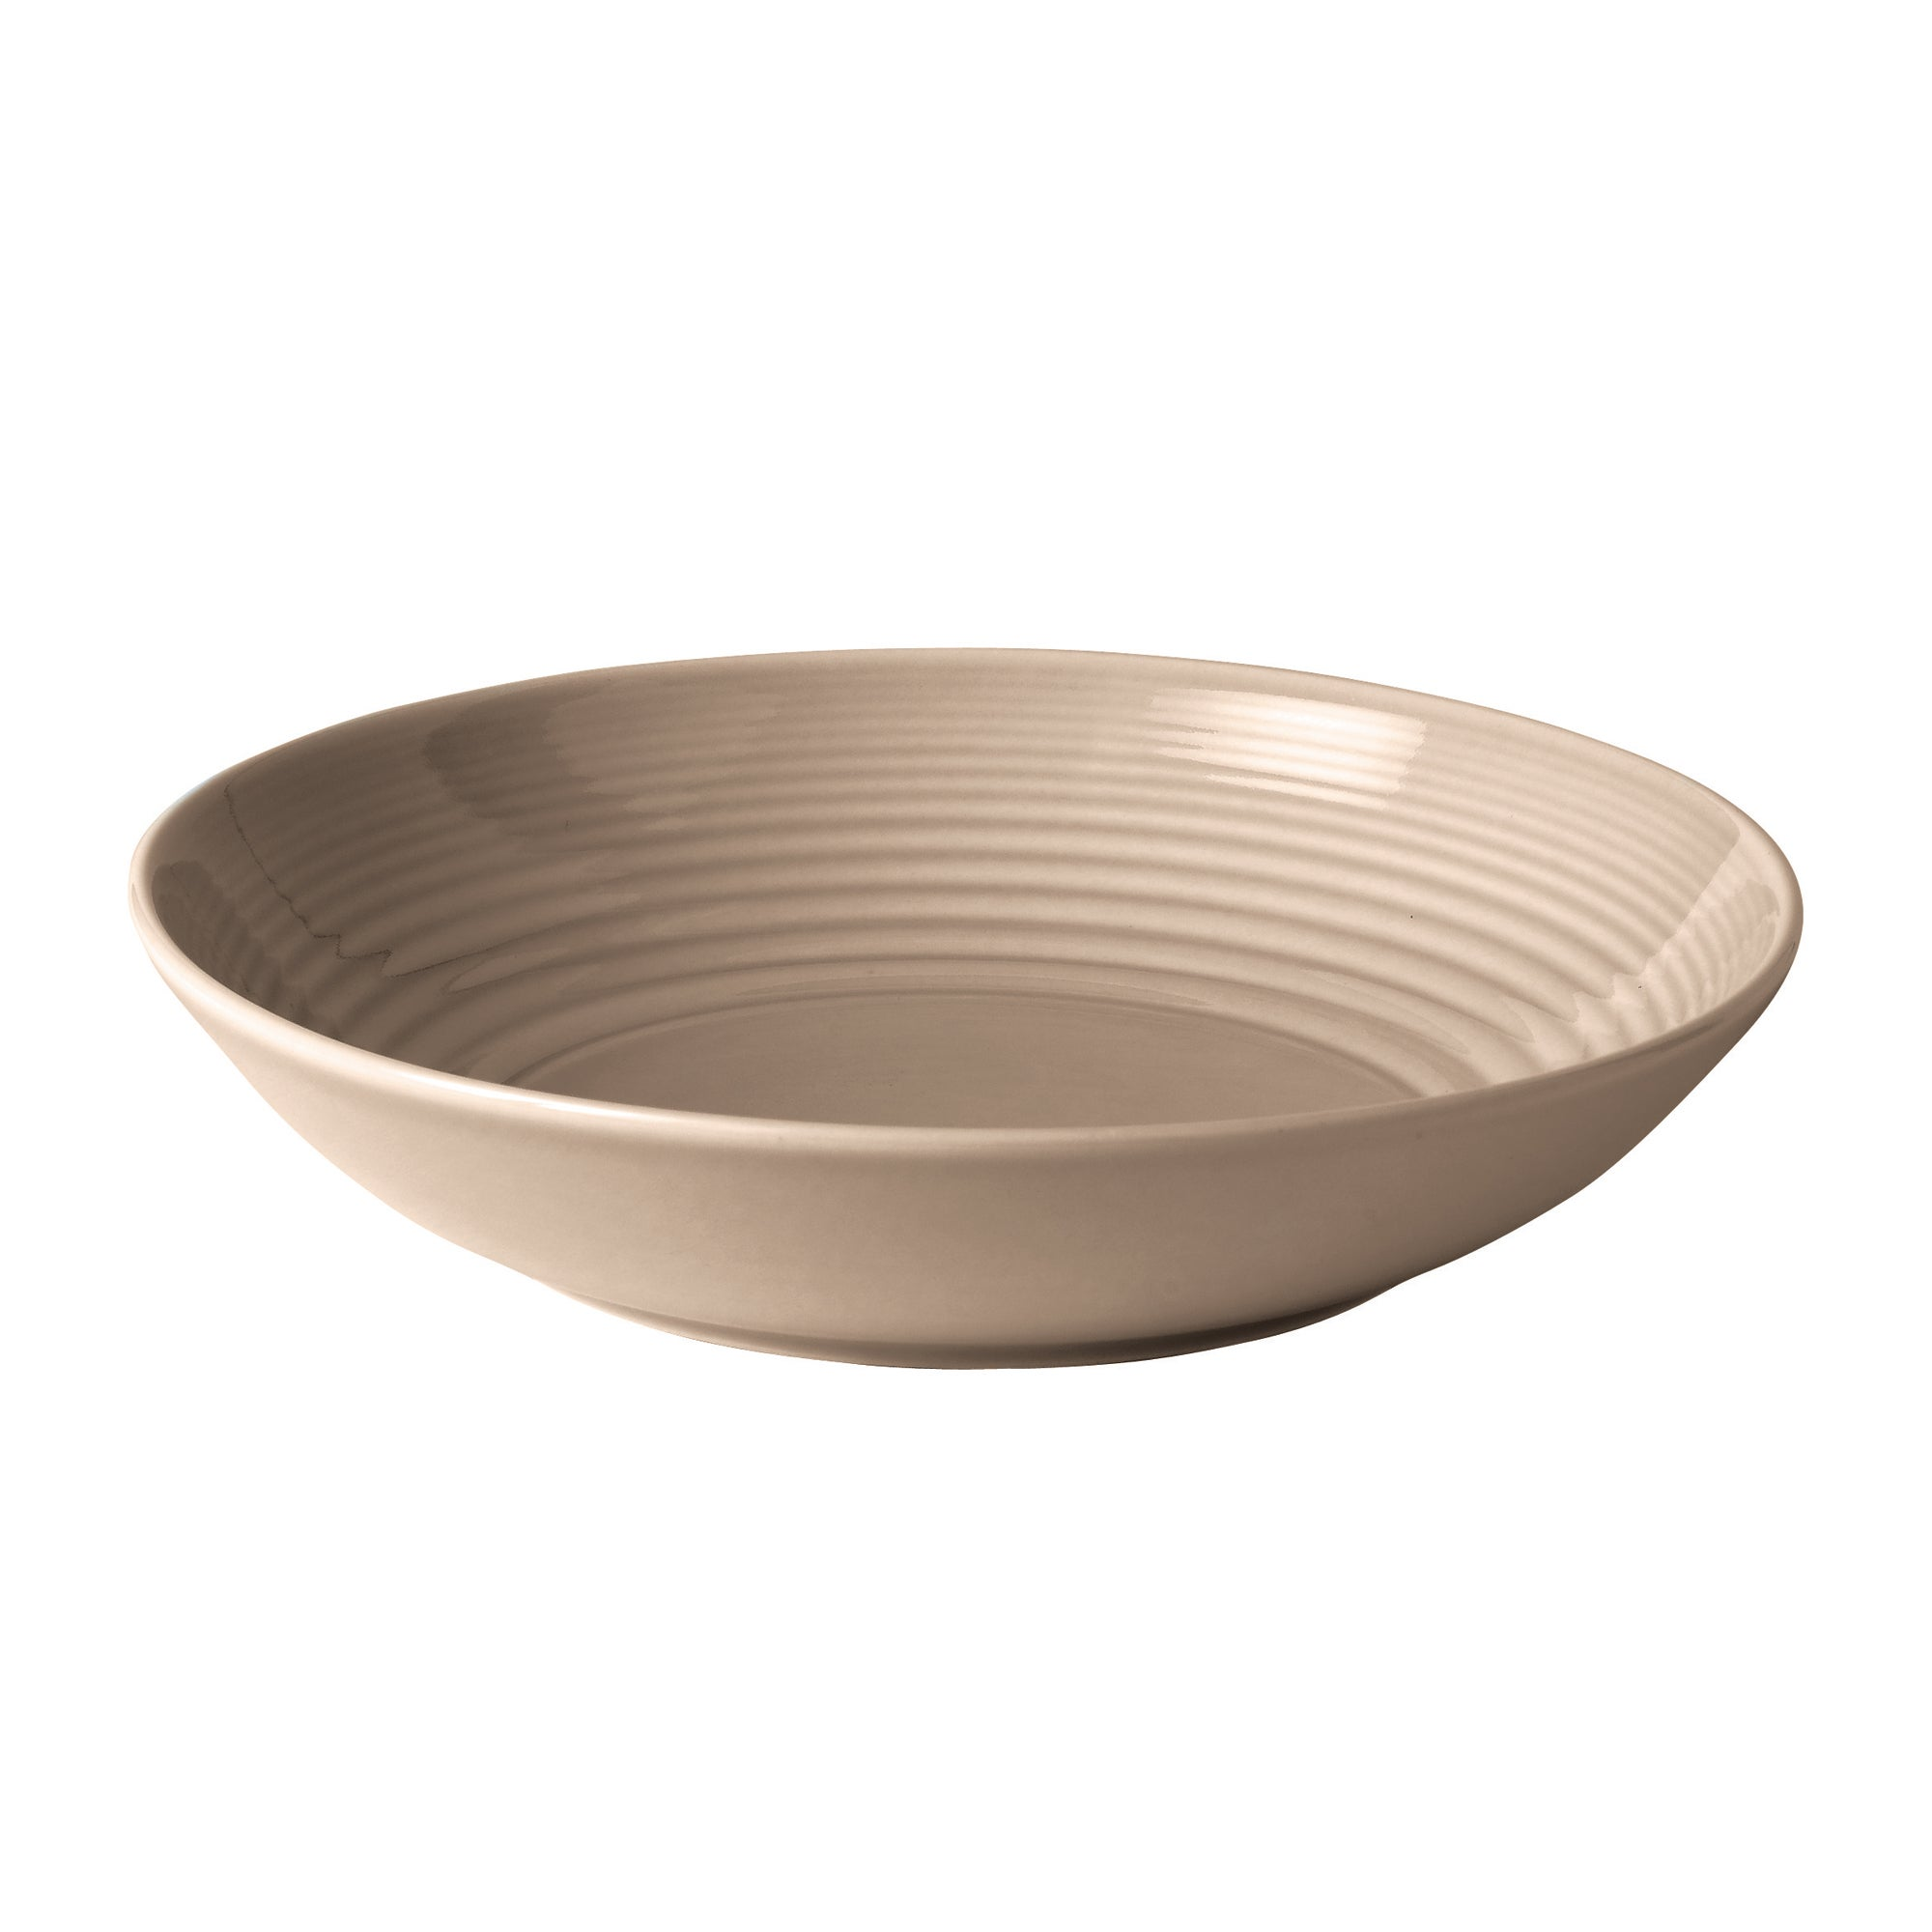 Taupe Gordon Ramsay Maze Collection Pasta Bowl